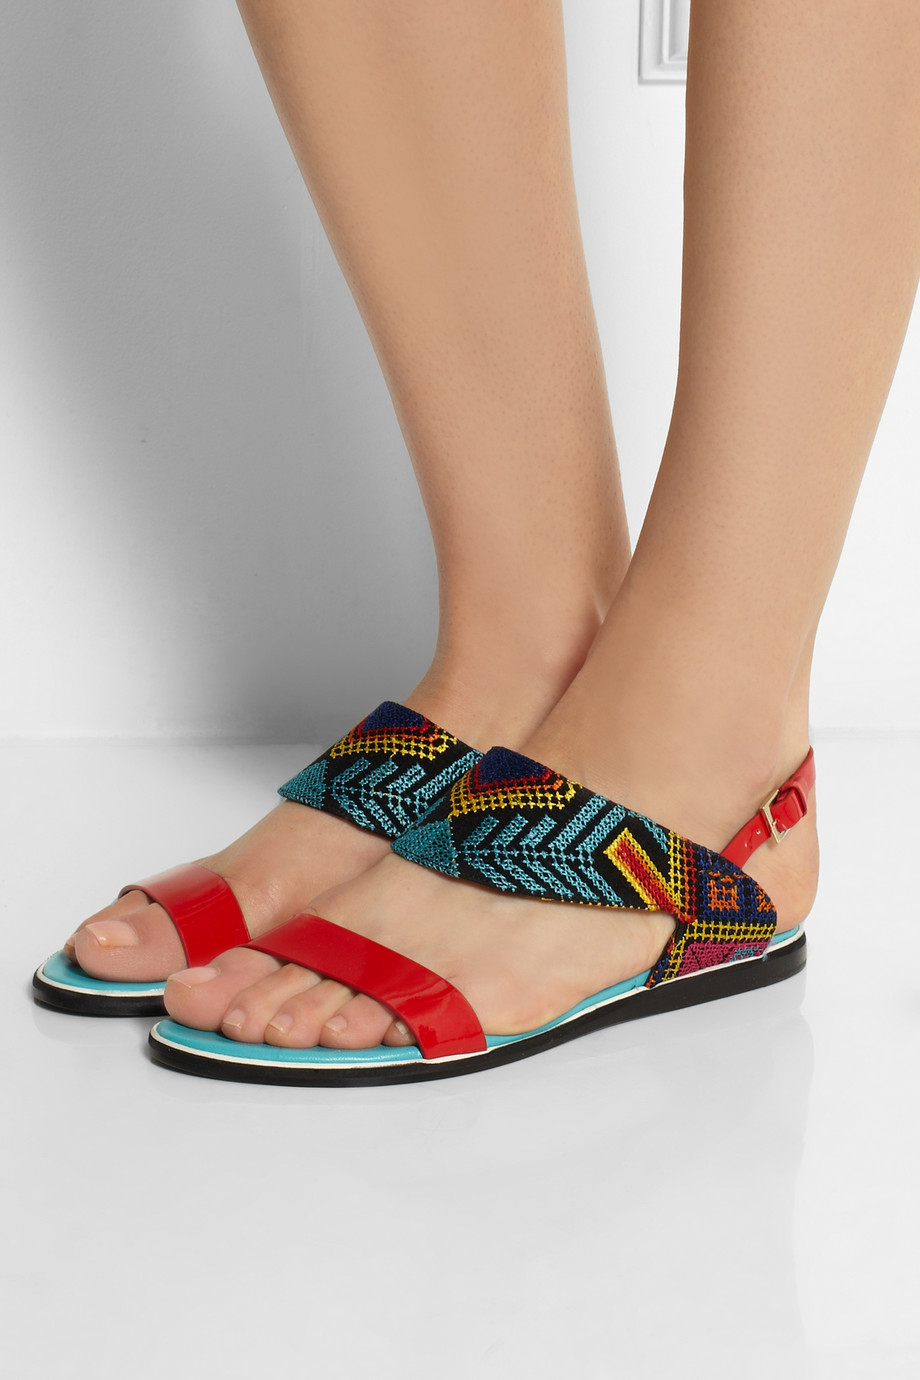 How To Wear Embroidered Shoes And Sandals